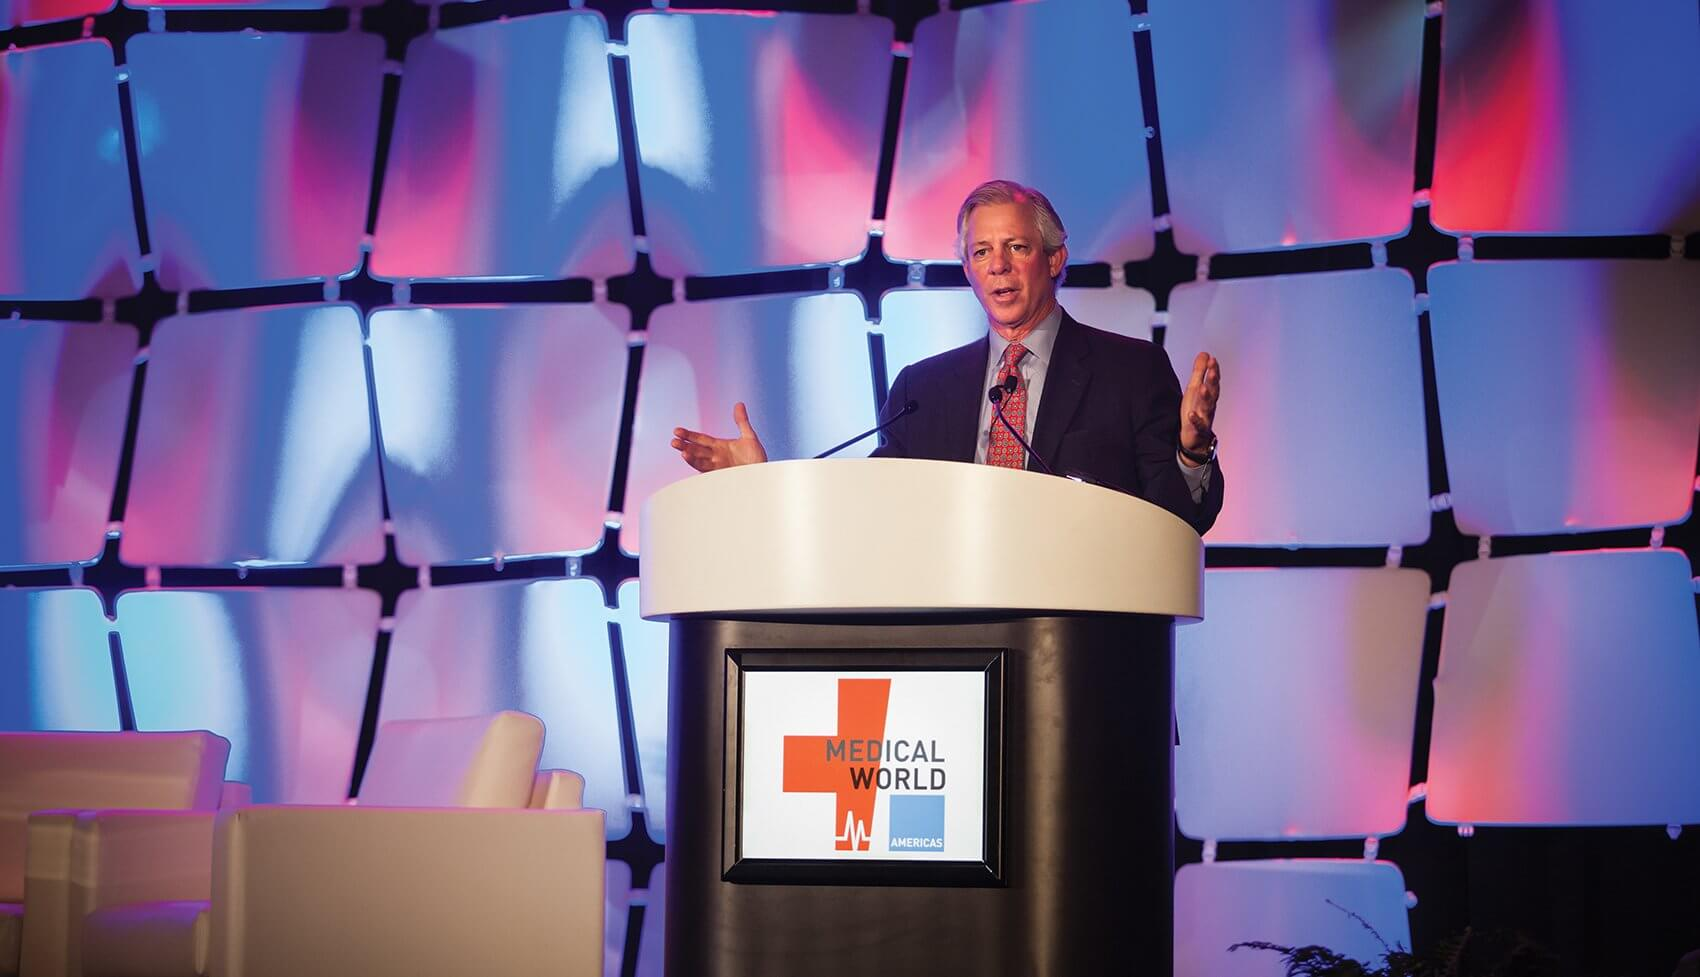 Texas Medical Center President and CEO Robert C. Robbins speaks at Medical World Americas.